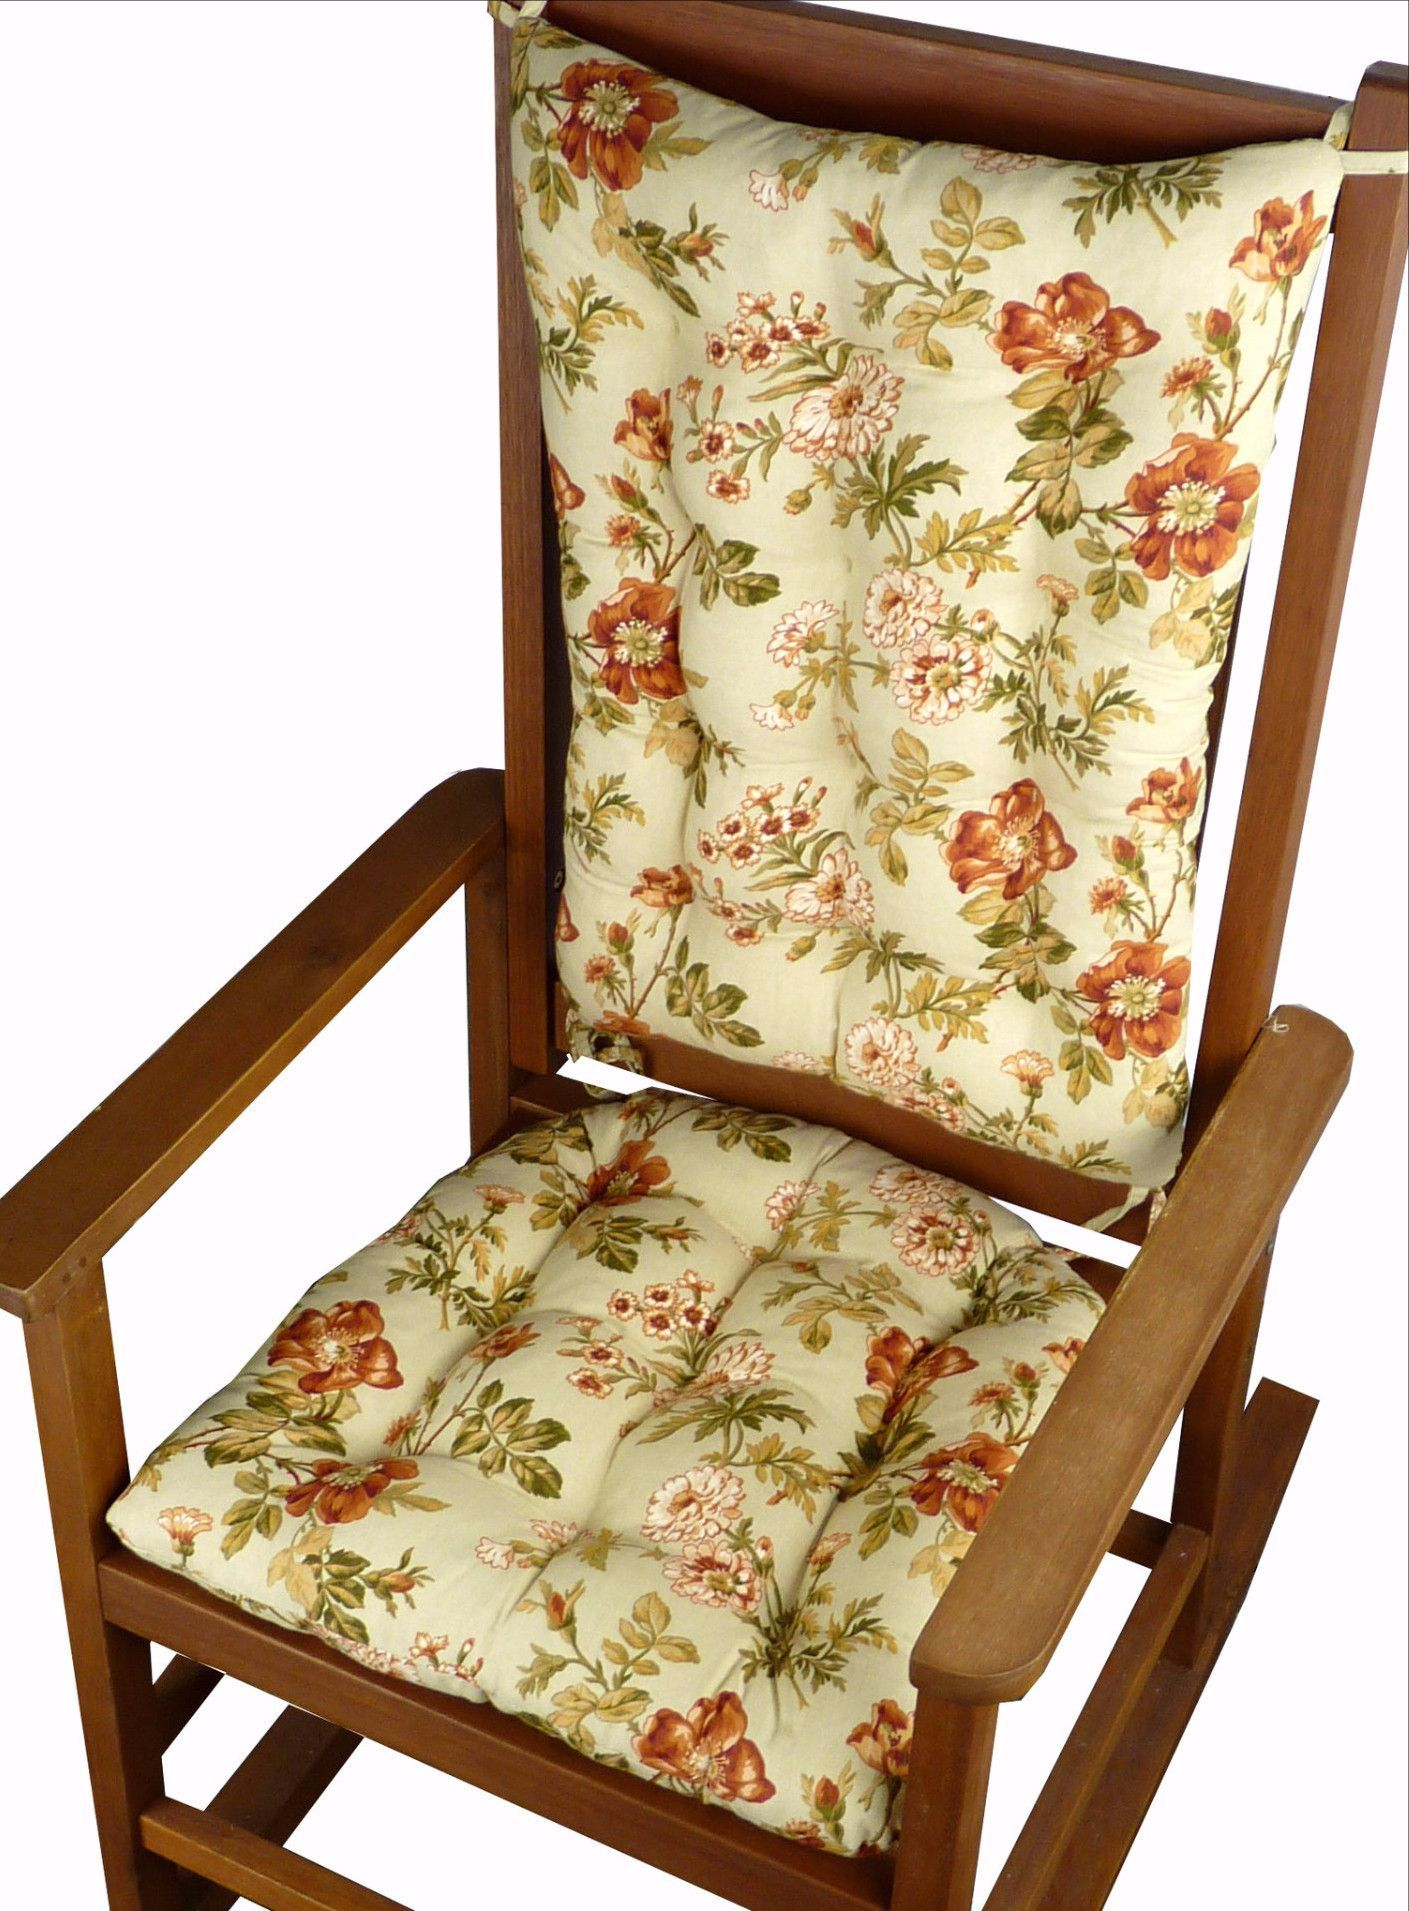 Rocking Chair Cushions   Farrell Sage Prairie Rose Floral Print   Latex  Foam Fill   Reversible